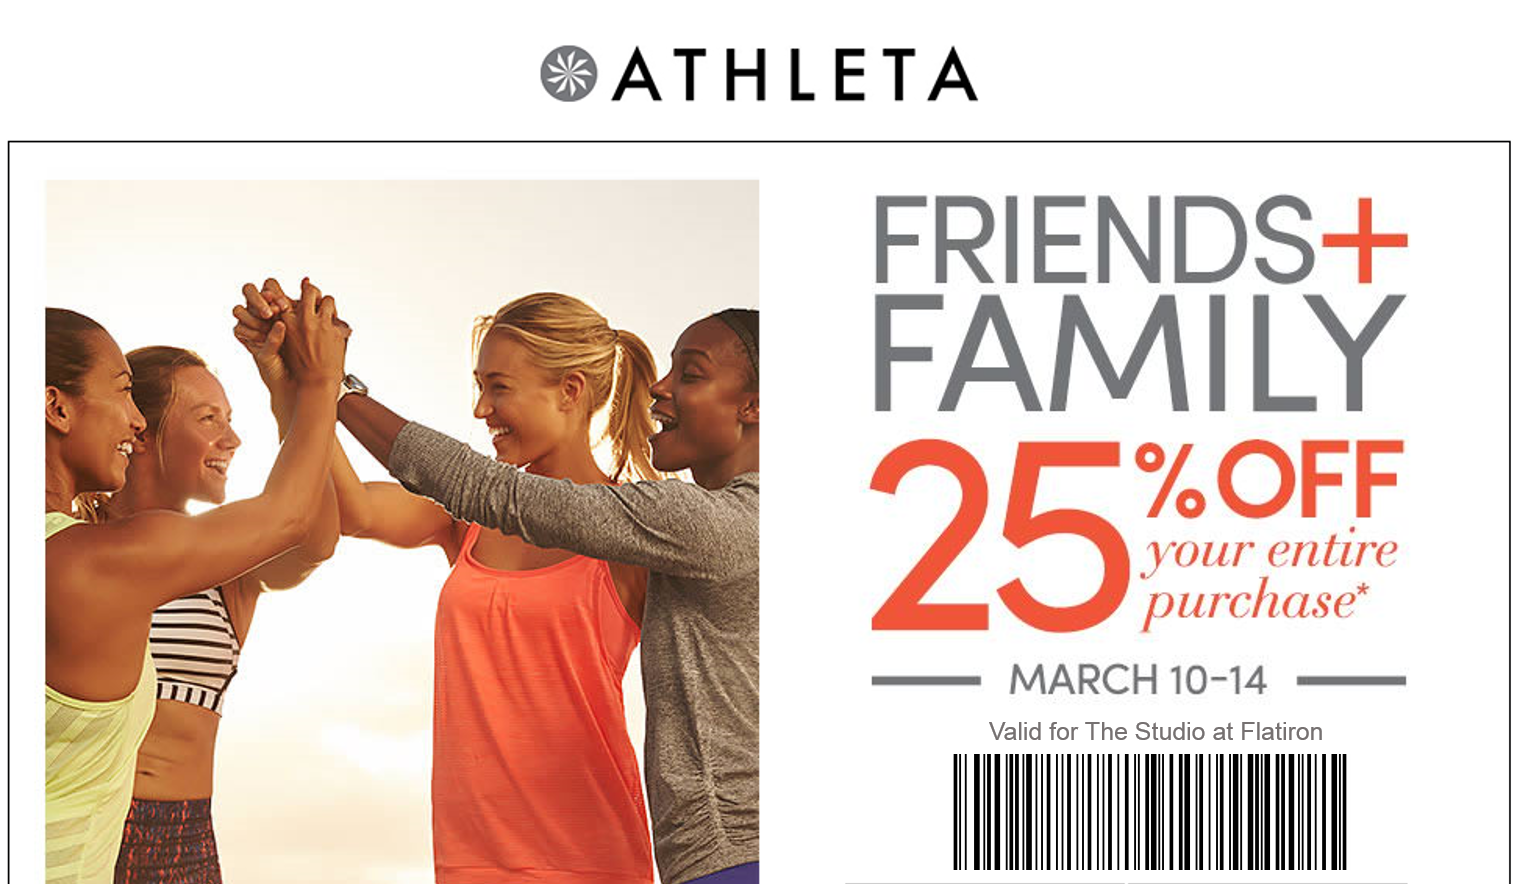 Any friend of WUKKOUT, is a friend of ours.     Show this exclusive invite at checkout     (*) This email offer valid on merchandise at  Athleta Flatiron  March 10, 2016 at 12:01am ET through March 14, 2016 at 11:59pm PT in the US only (including Puerto Rico). Discount applies to merchandise only, not to GiftCards, packaging, applicable taxes, or shipping and handling charges. Offer not valid on footwear. Not valid for cash or cash equivalent. No adjustments on previous purchases. Cannot be combined with other offers or discounts including Gap Inc. employee discount. Valid for one-time use in-store.